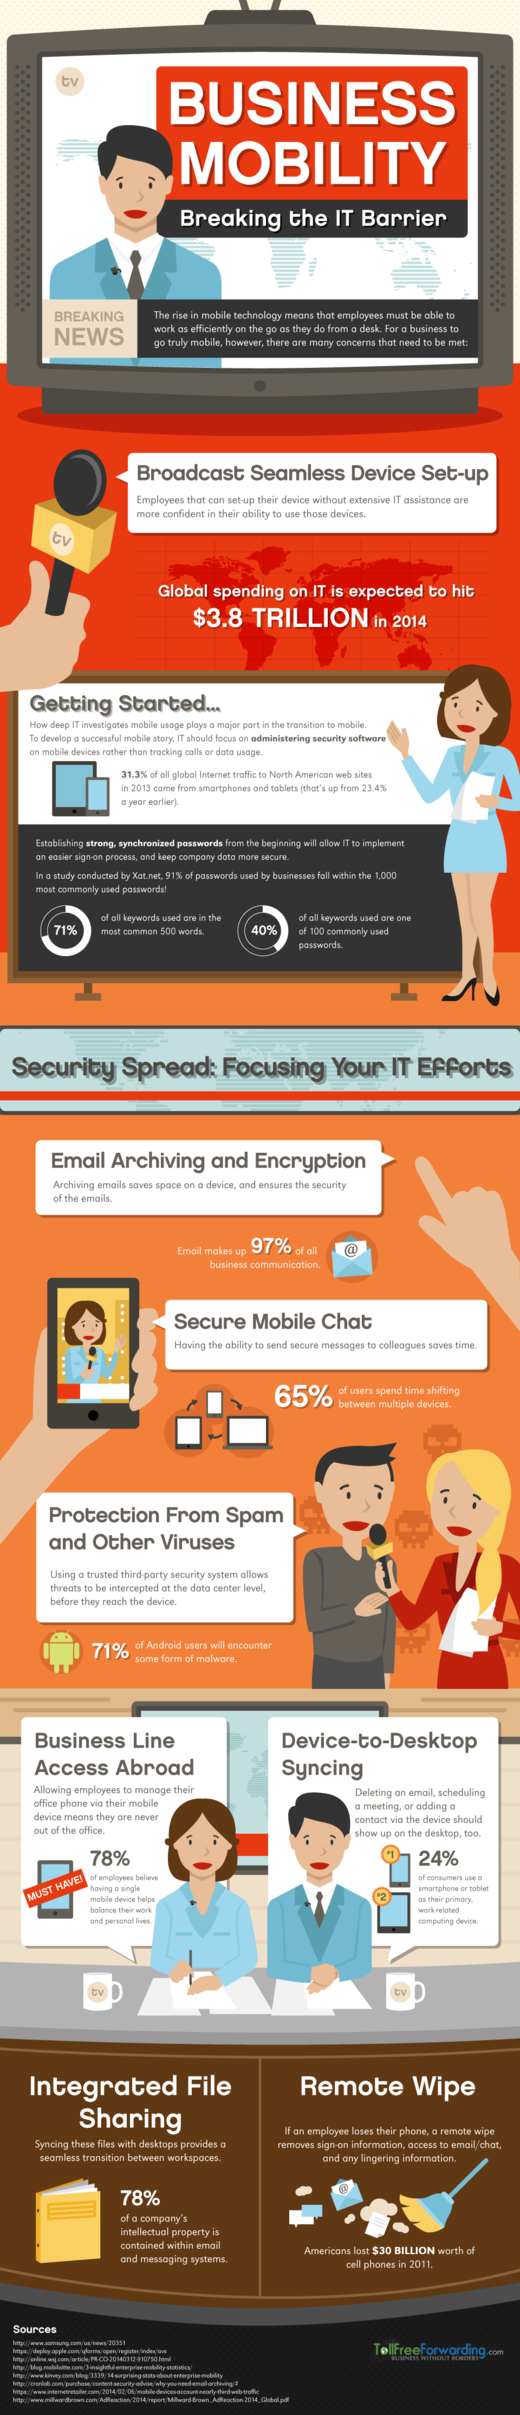 Business Mobility: Cutting Down the IT Factor